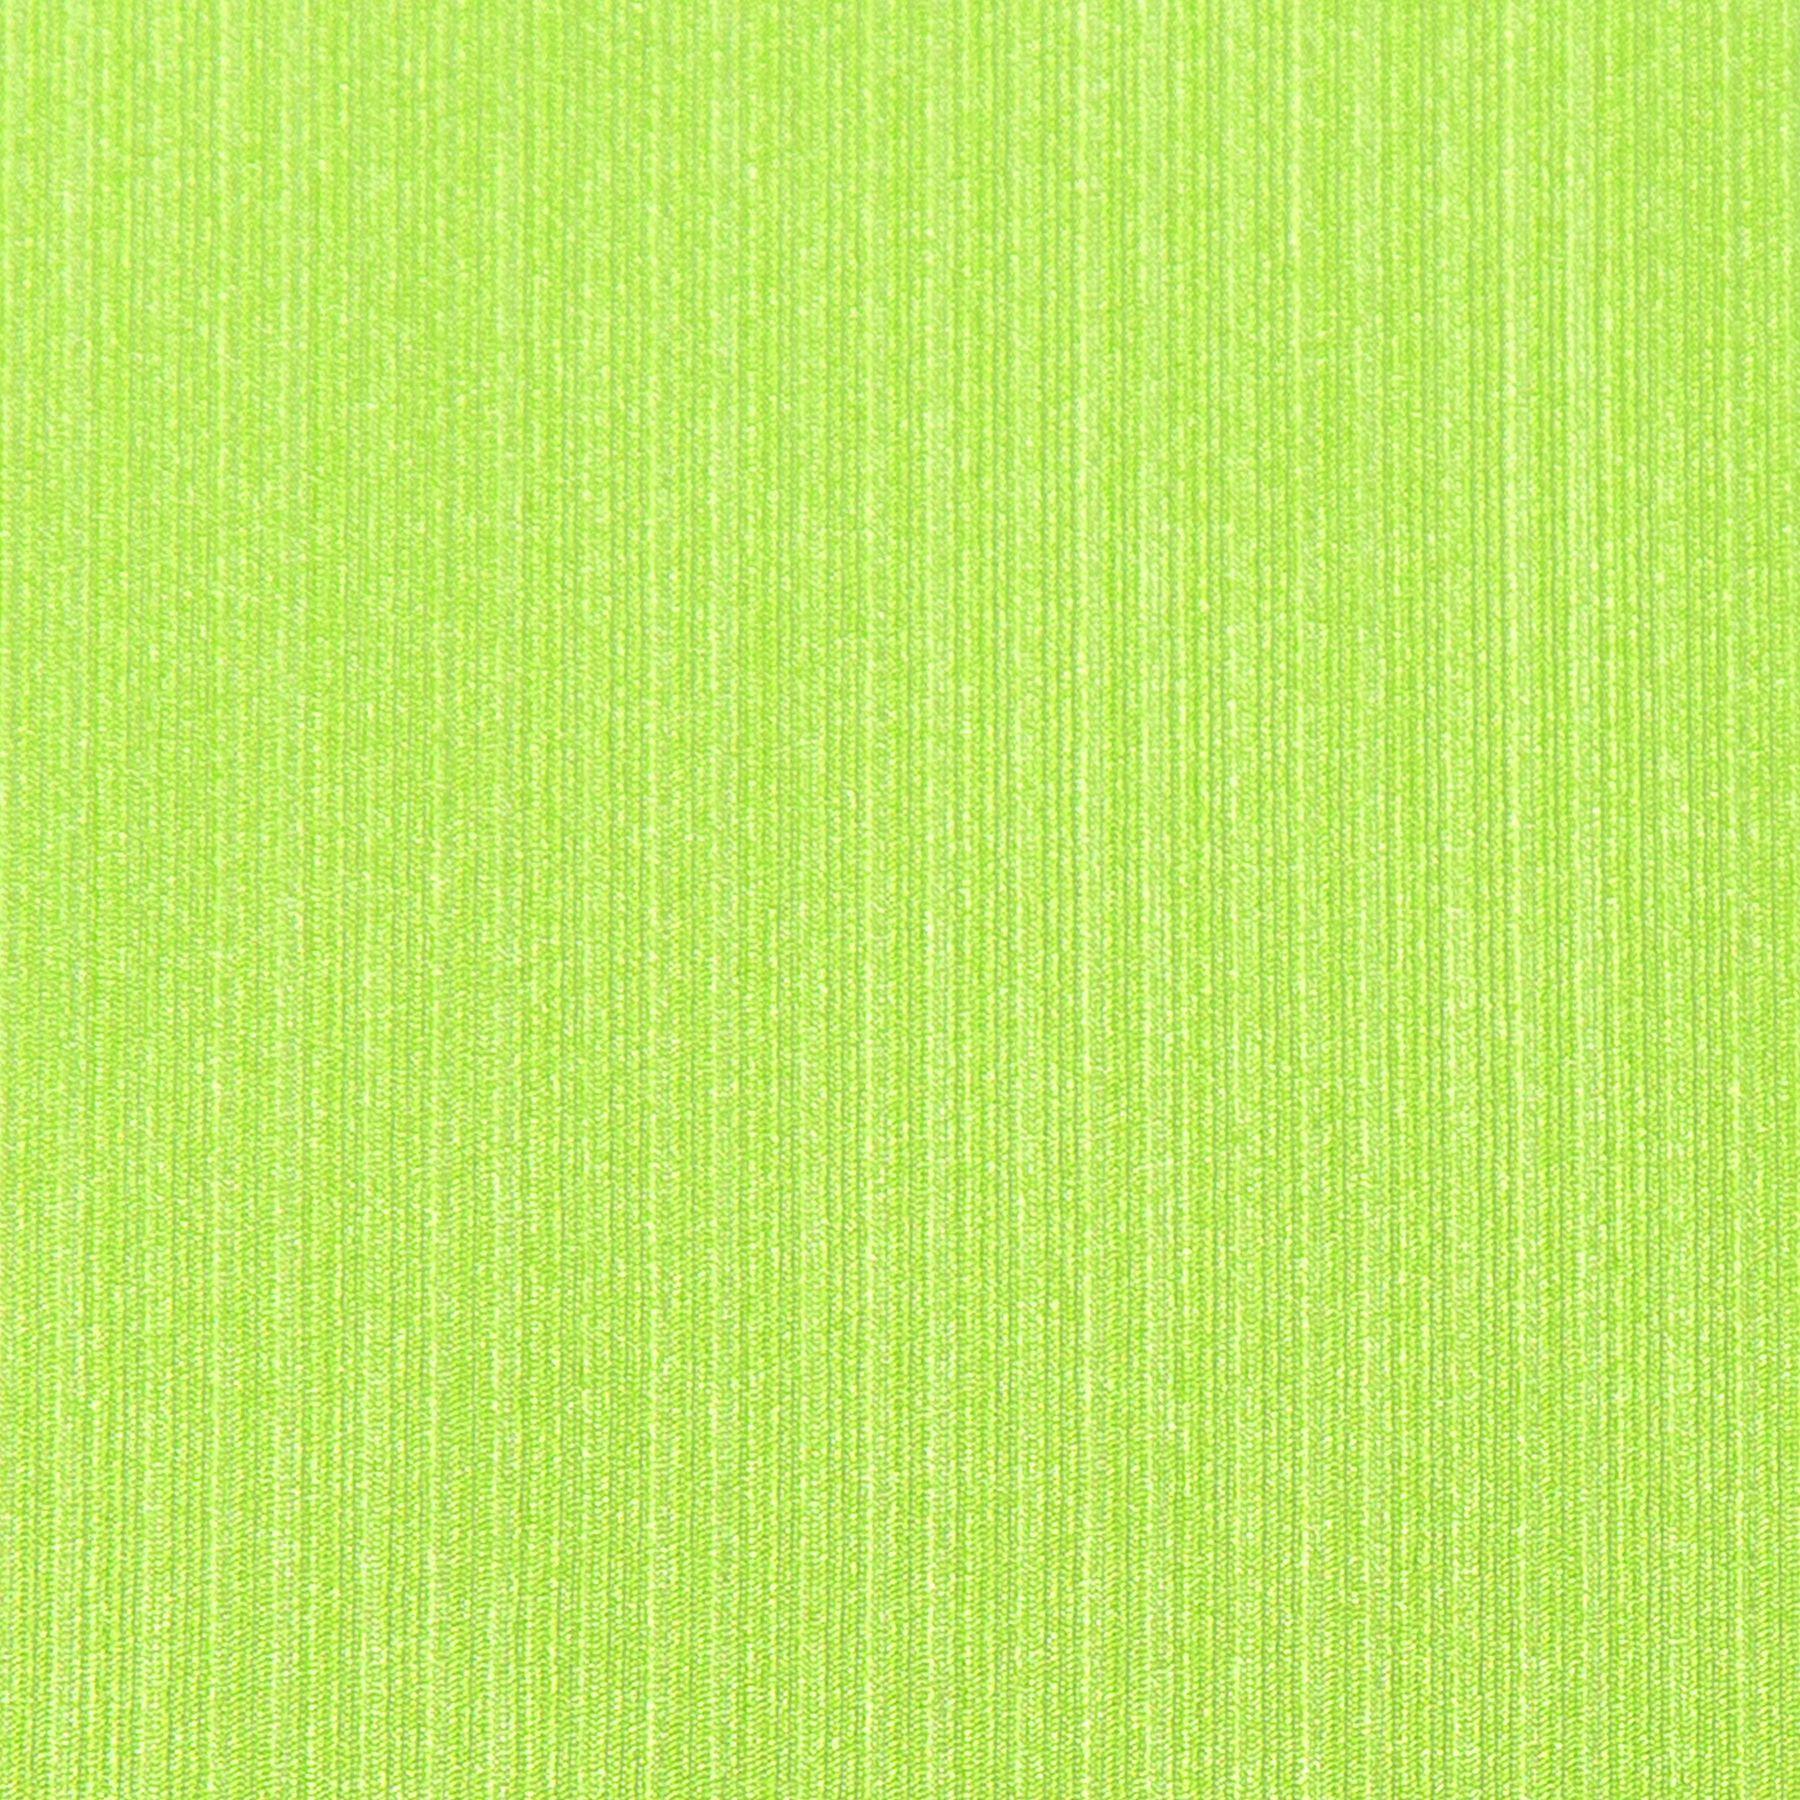 Vertical Lime